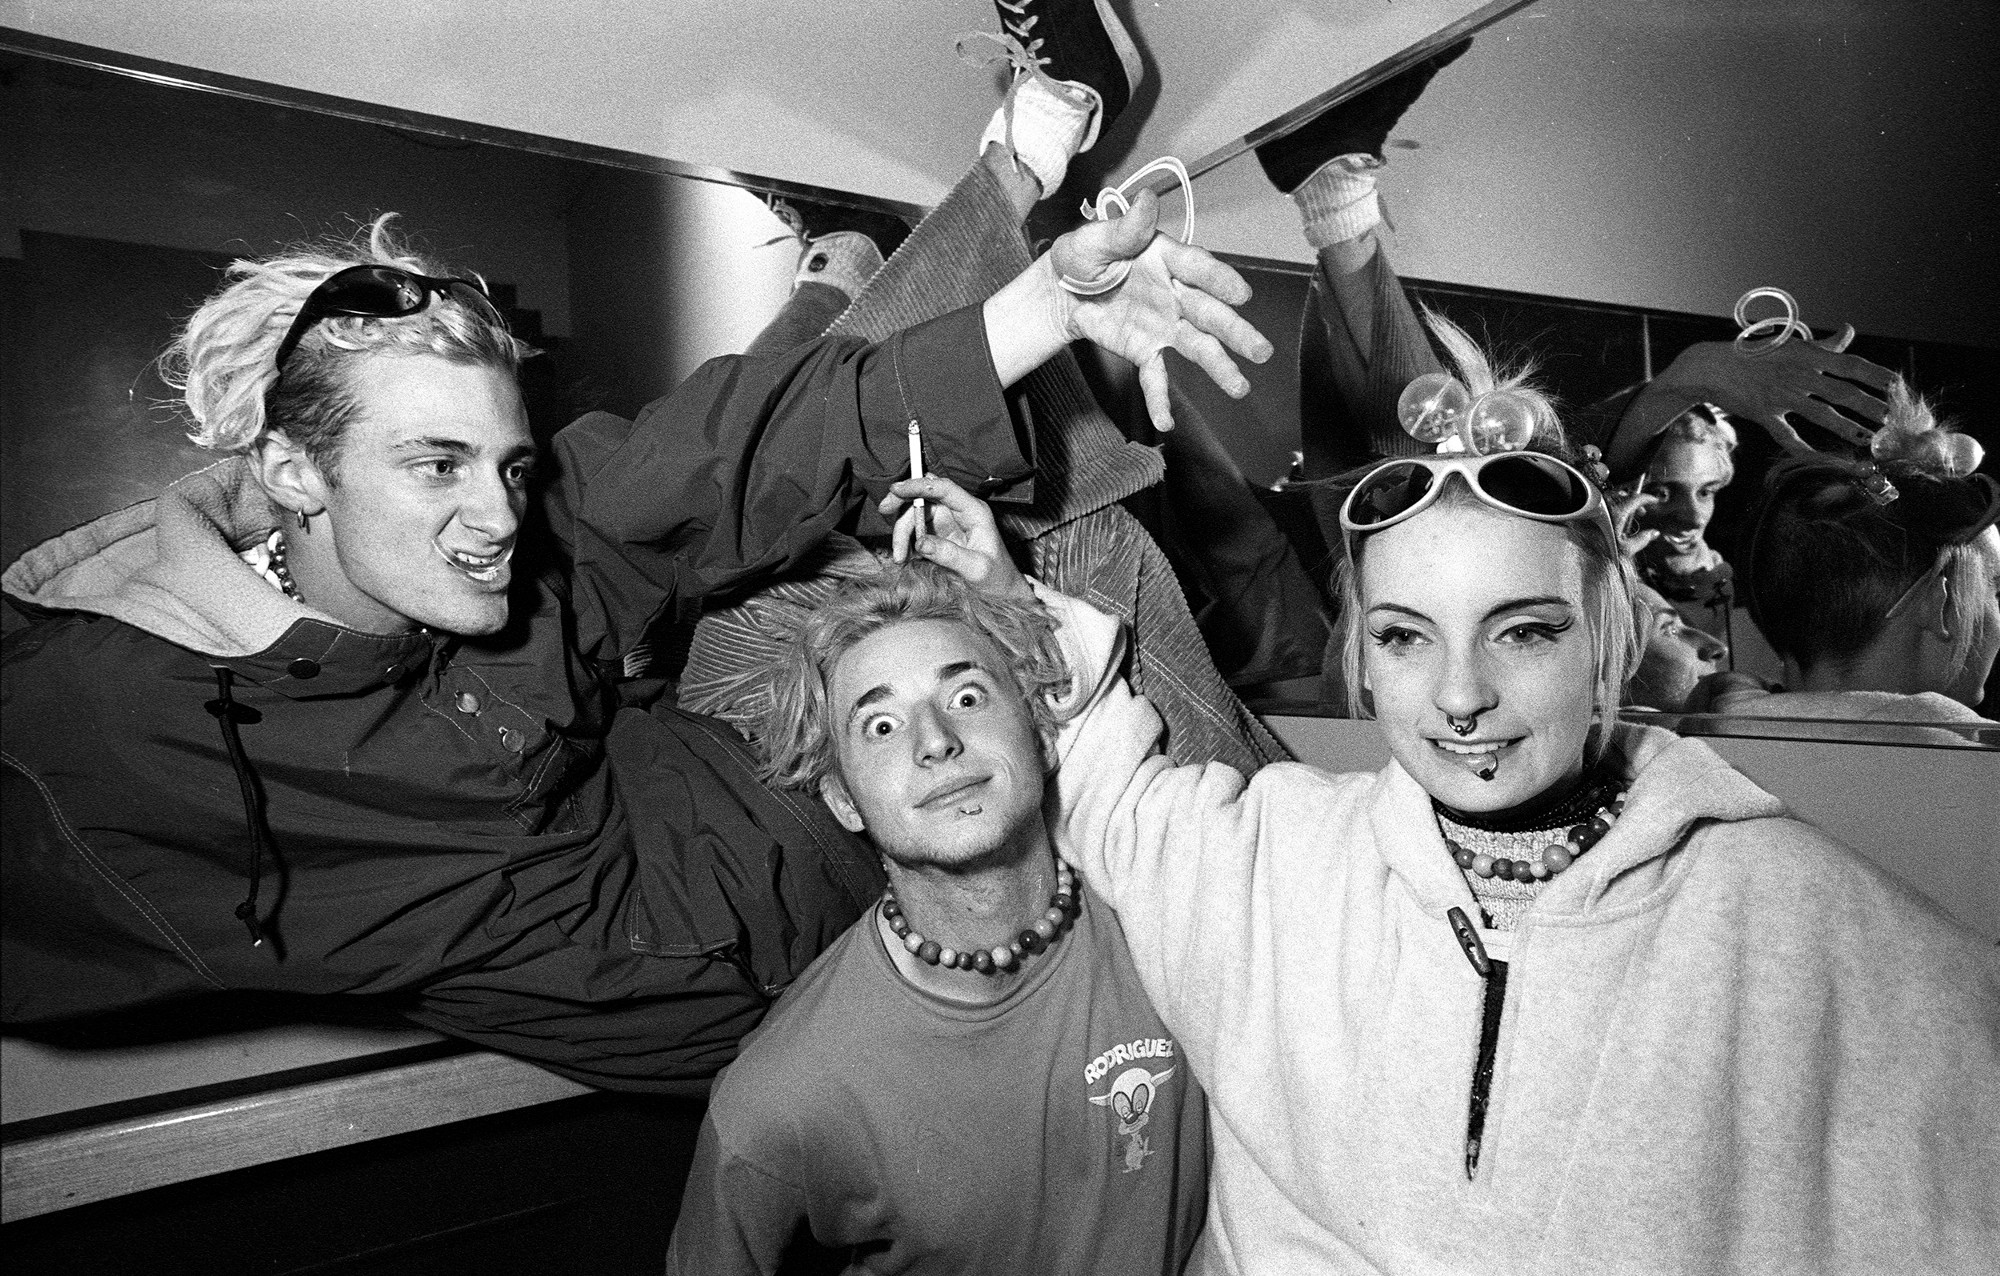 photos: rave culture's golden era was all about 'peace, love, unity